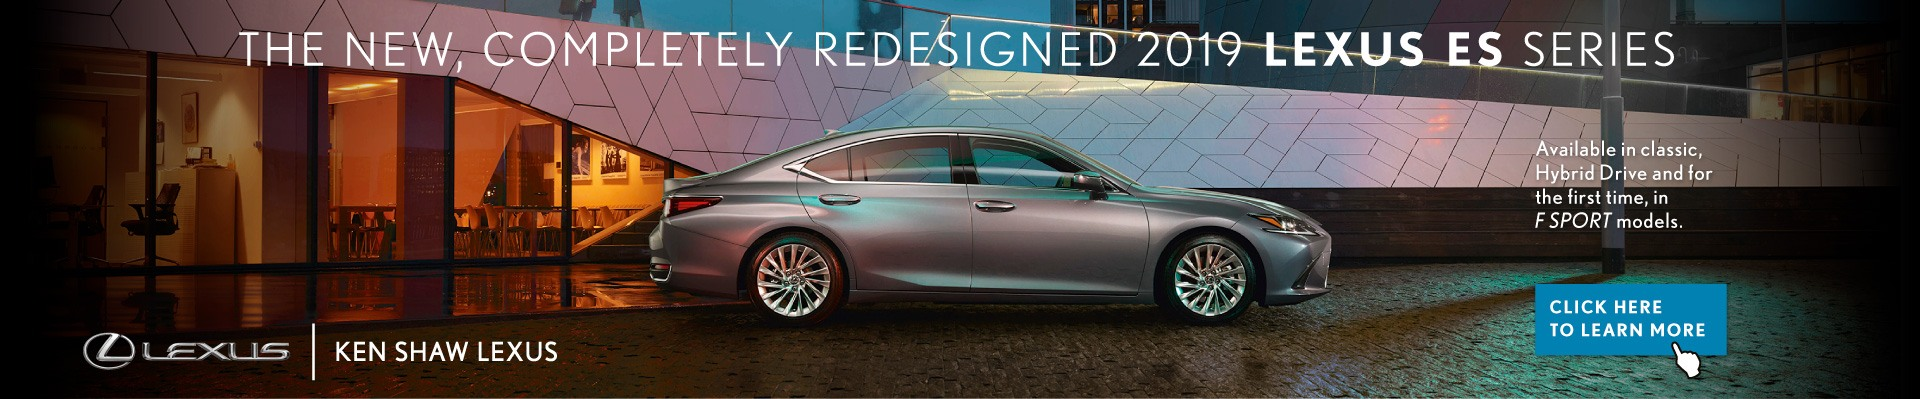 NEW 2019 LEXUS ES Offer AT KEN SHAW LEXUS IN TORONTO ONTARIO